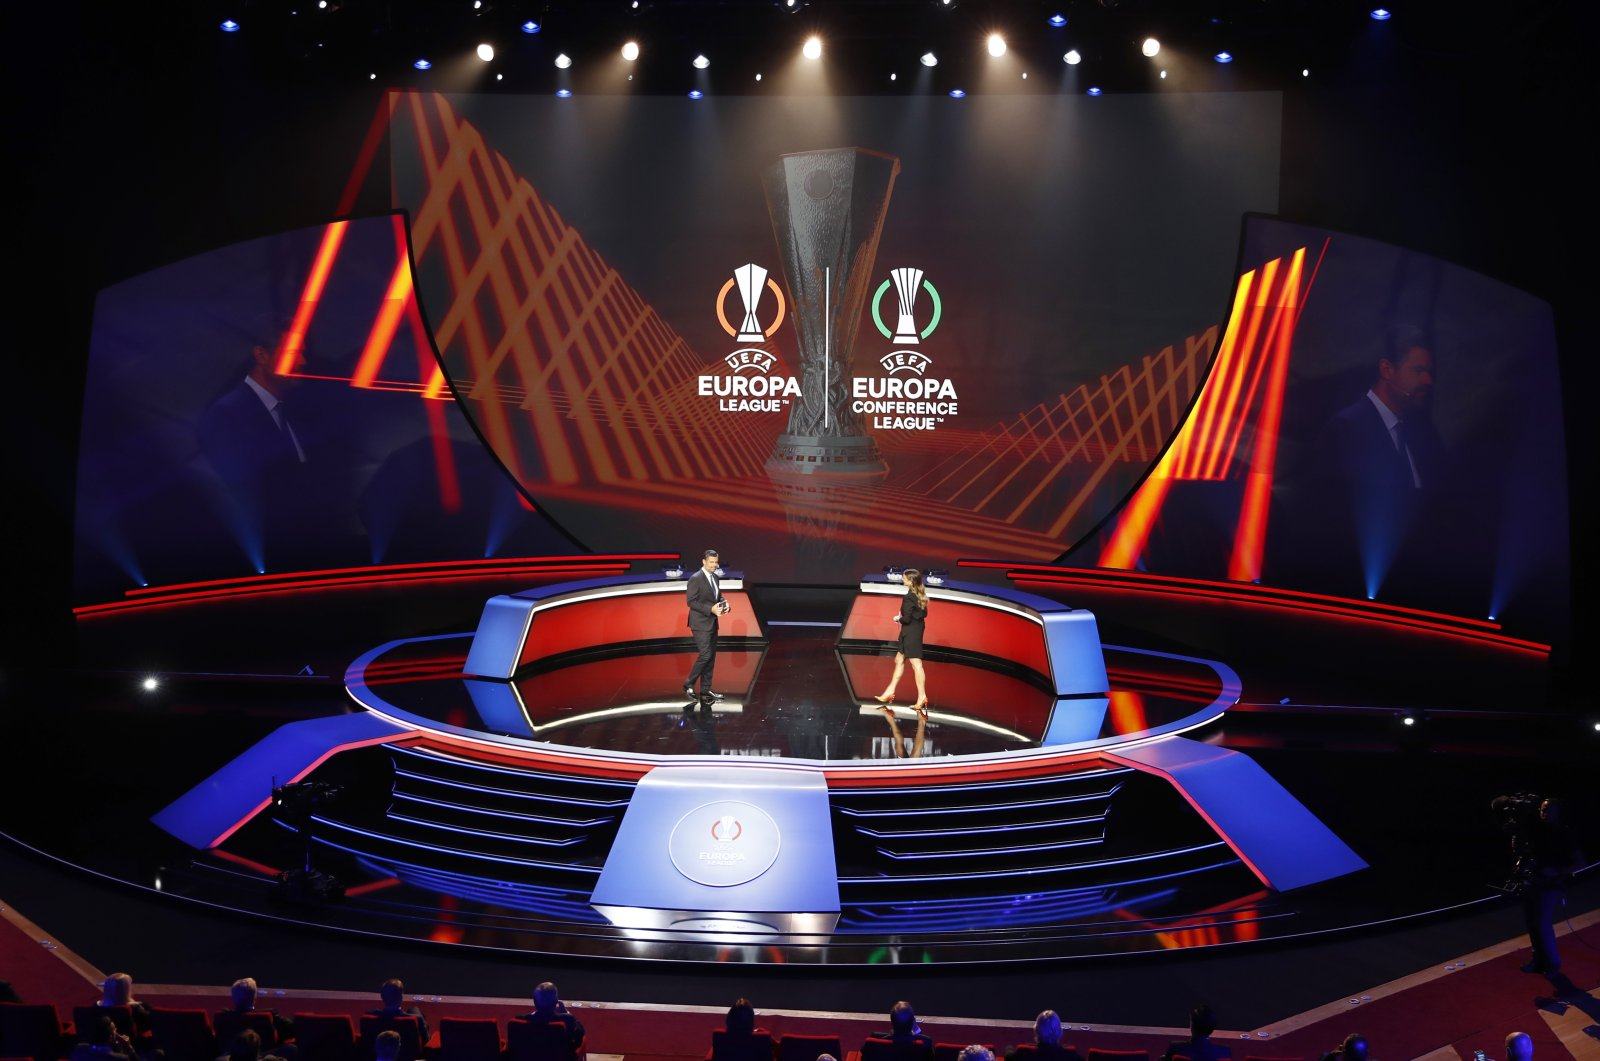 General view before the Europa League and Europa Conference League group stage draws at the Haliç Congress Center, Istanbul, Turkey, Aug. 27, 2021. (Reuters Photo)